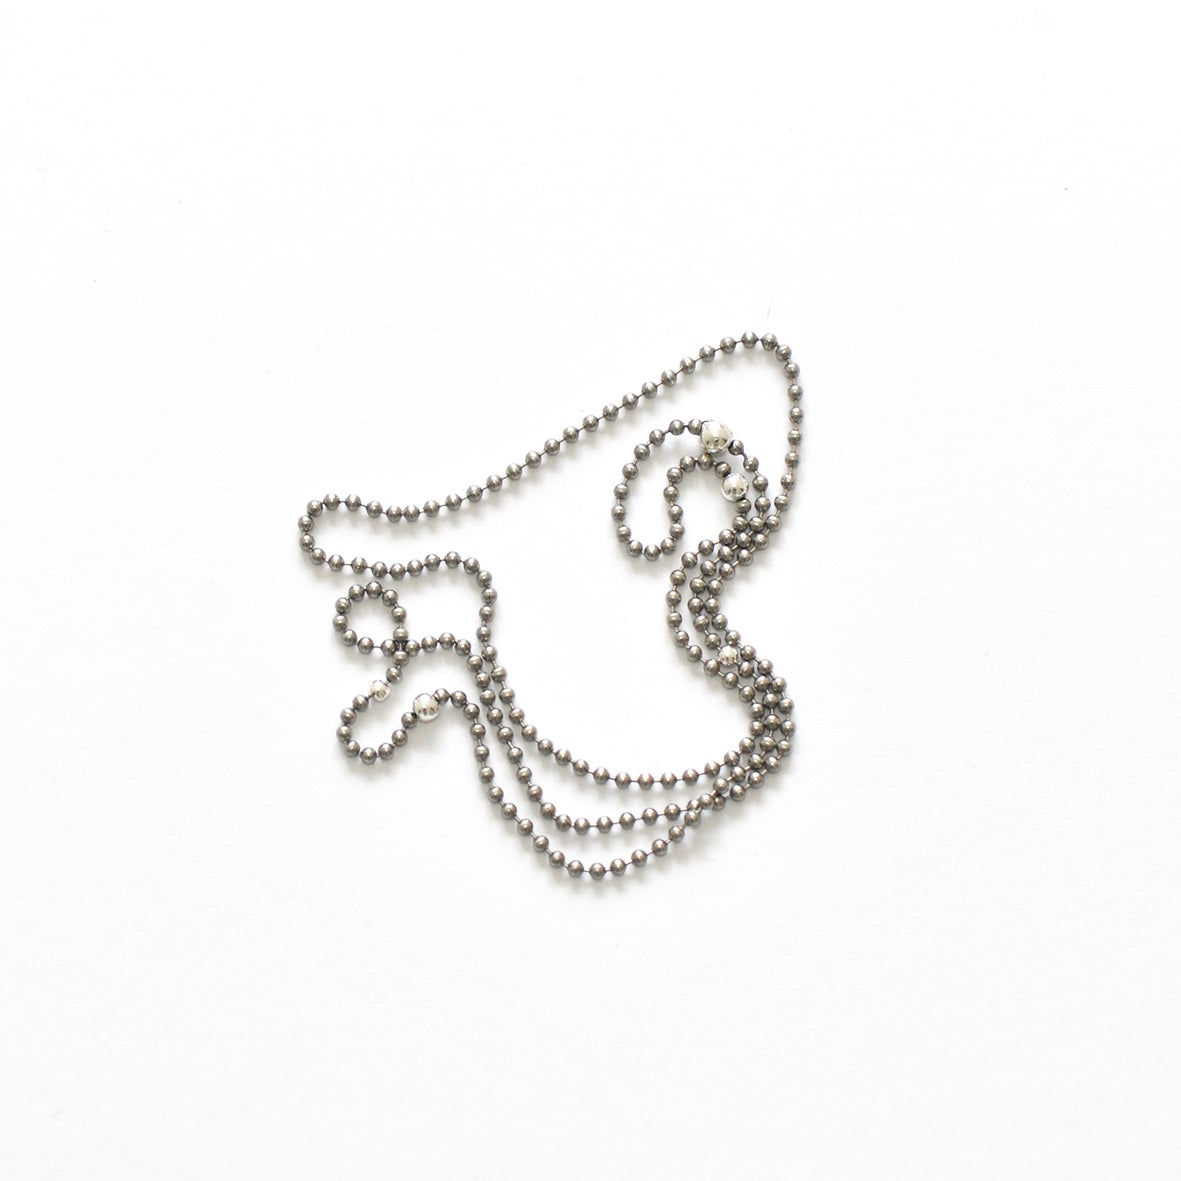 Image of STEEL+SILVER short necklace